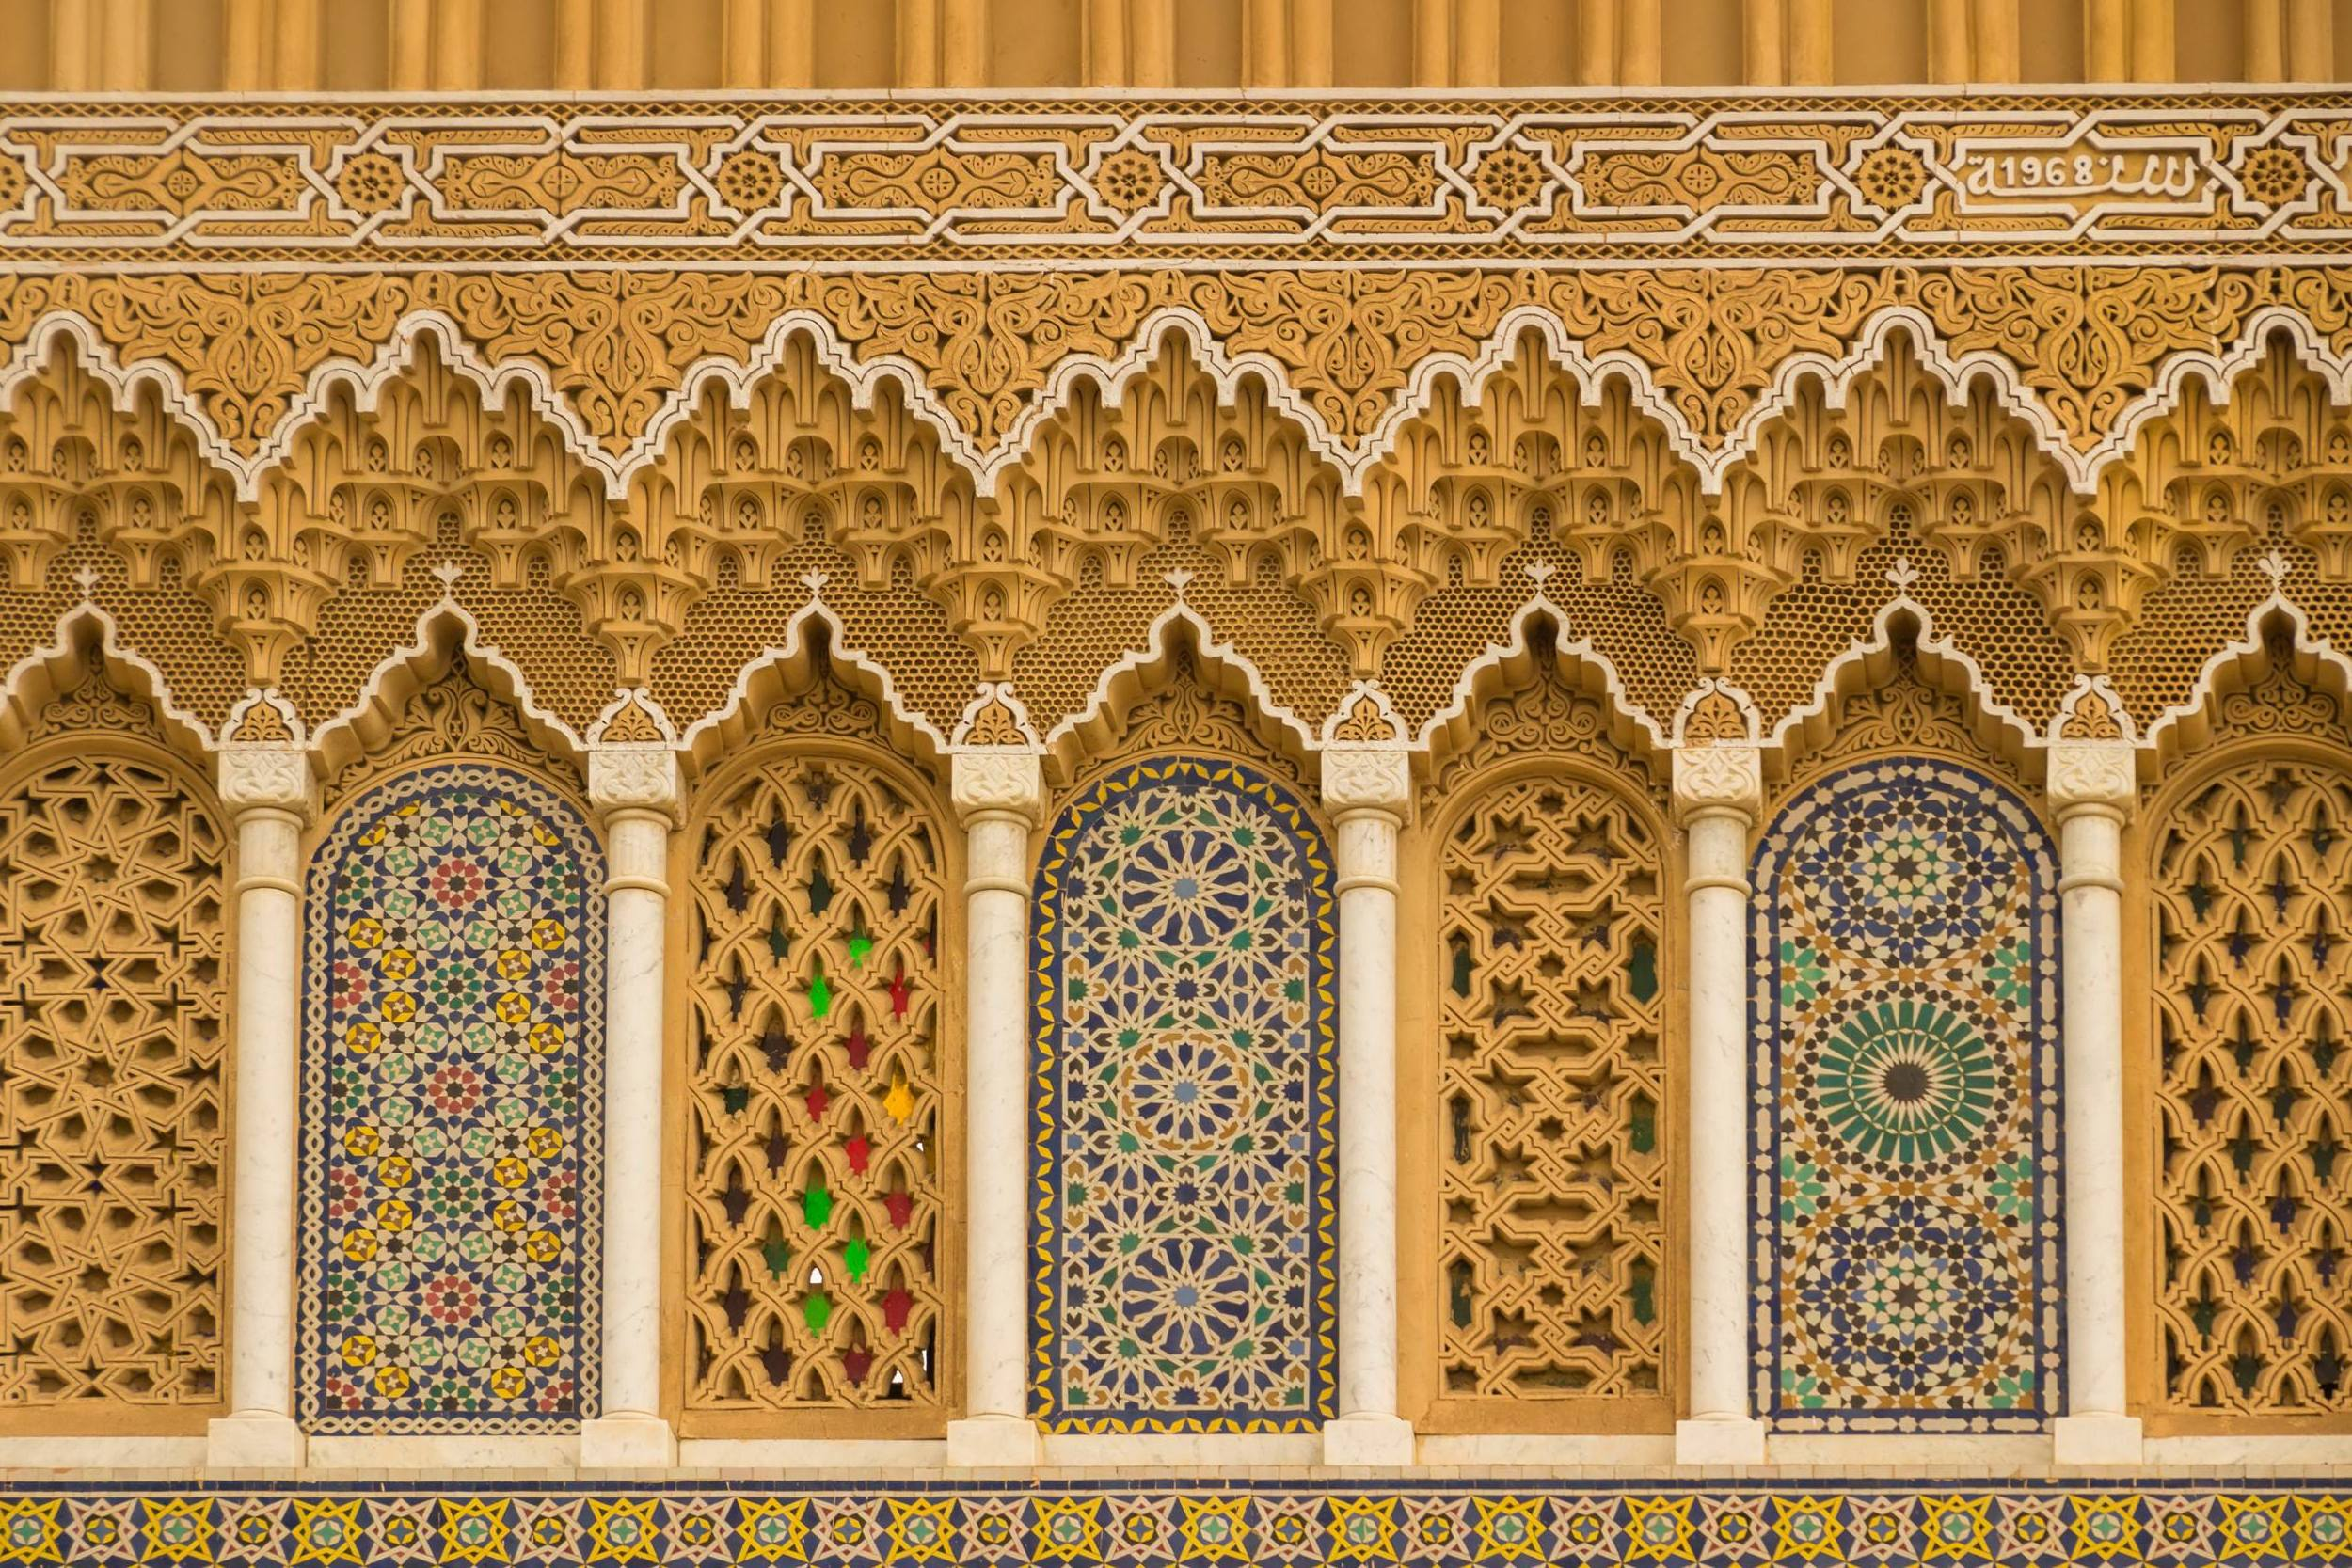 Canva - Islamic calligraphy and colorful geometric patterns a Morocco.